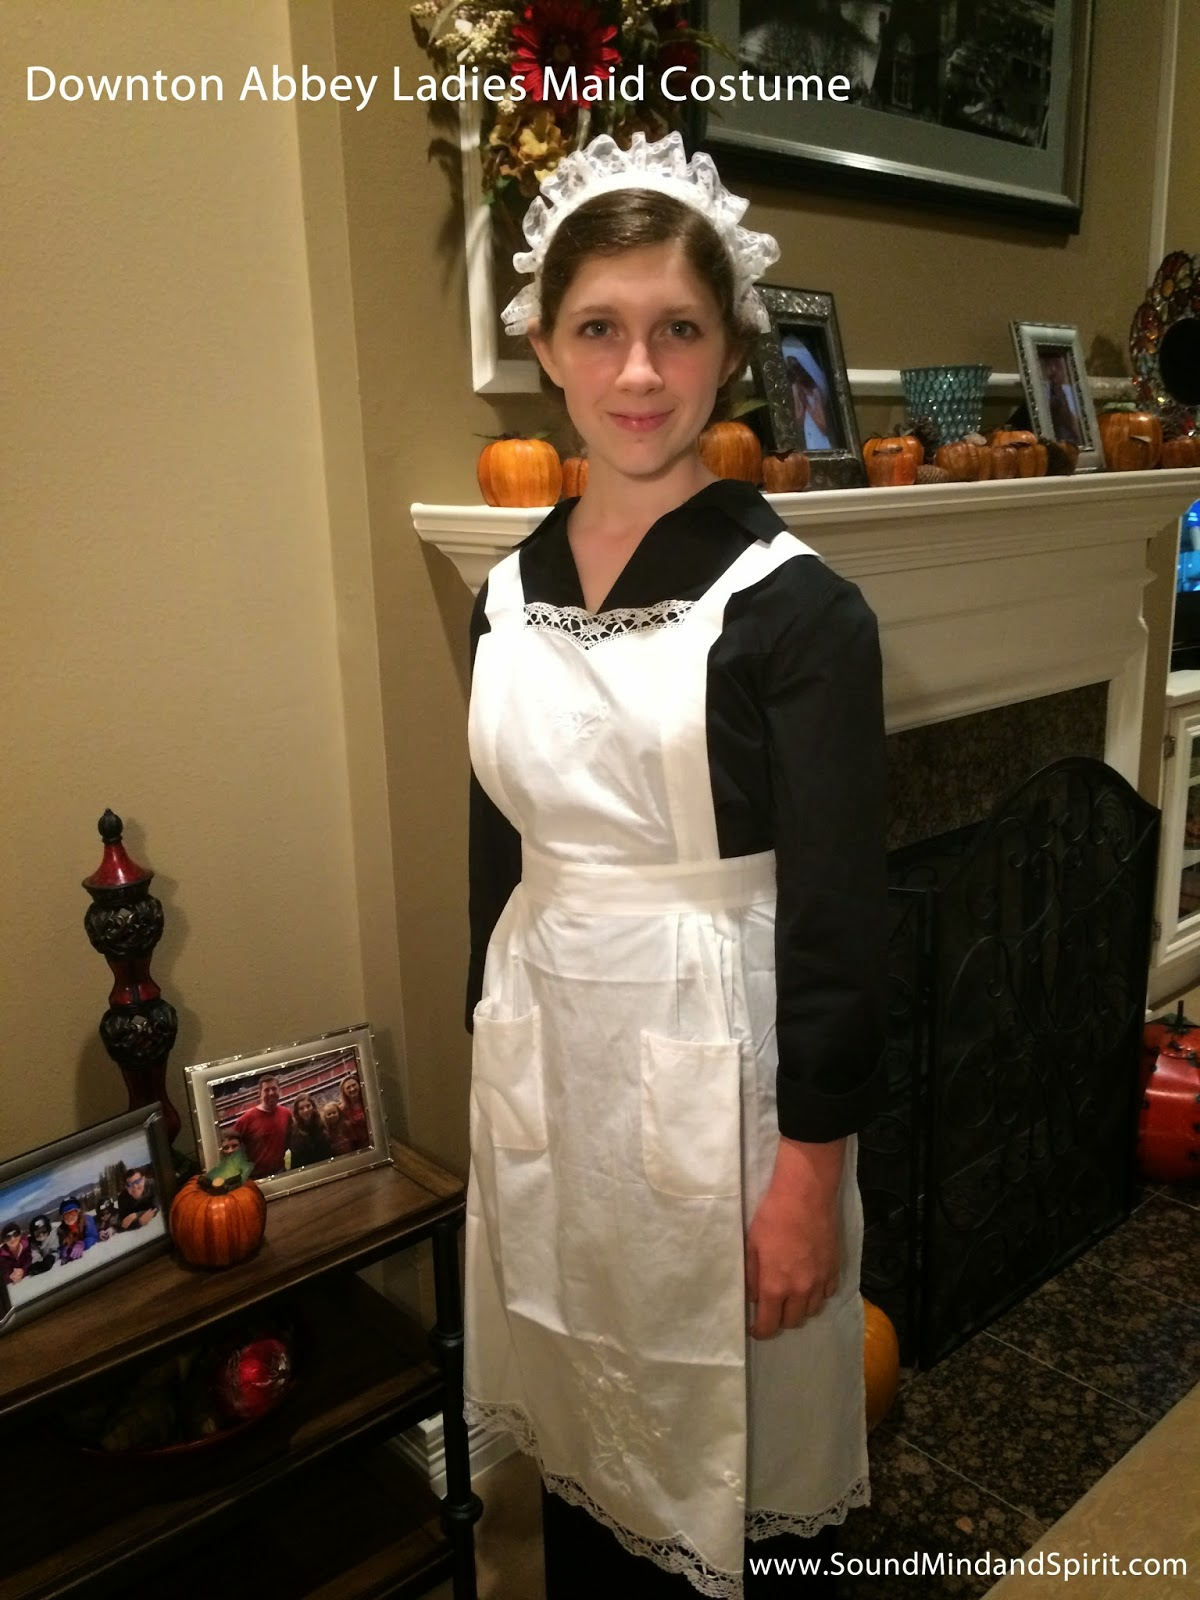 Downton Abbey Ladies Maid Costume